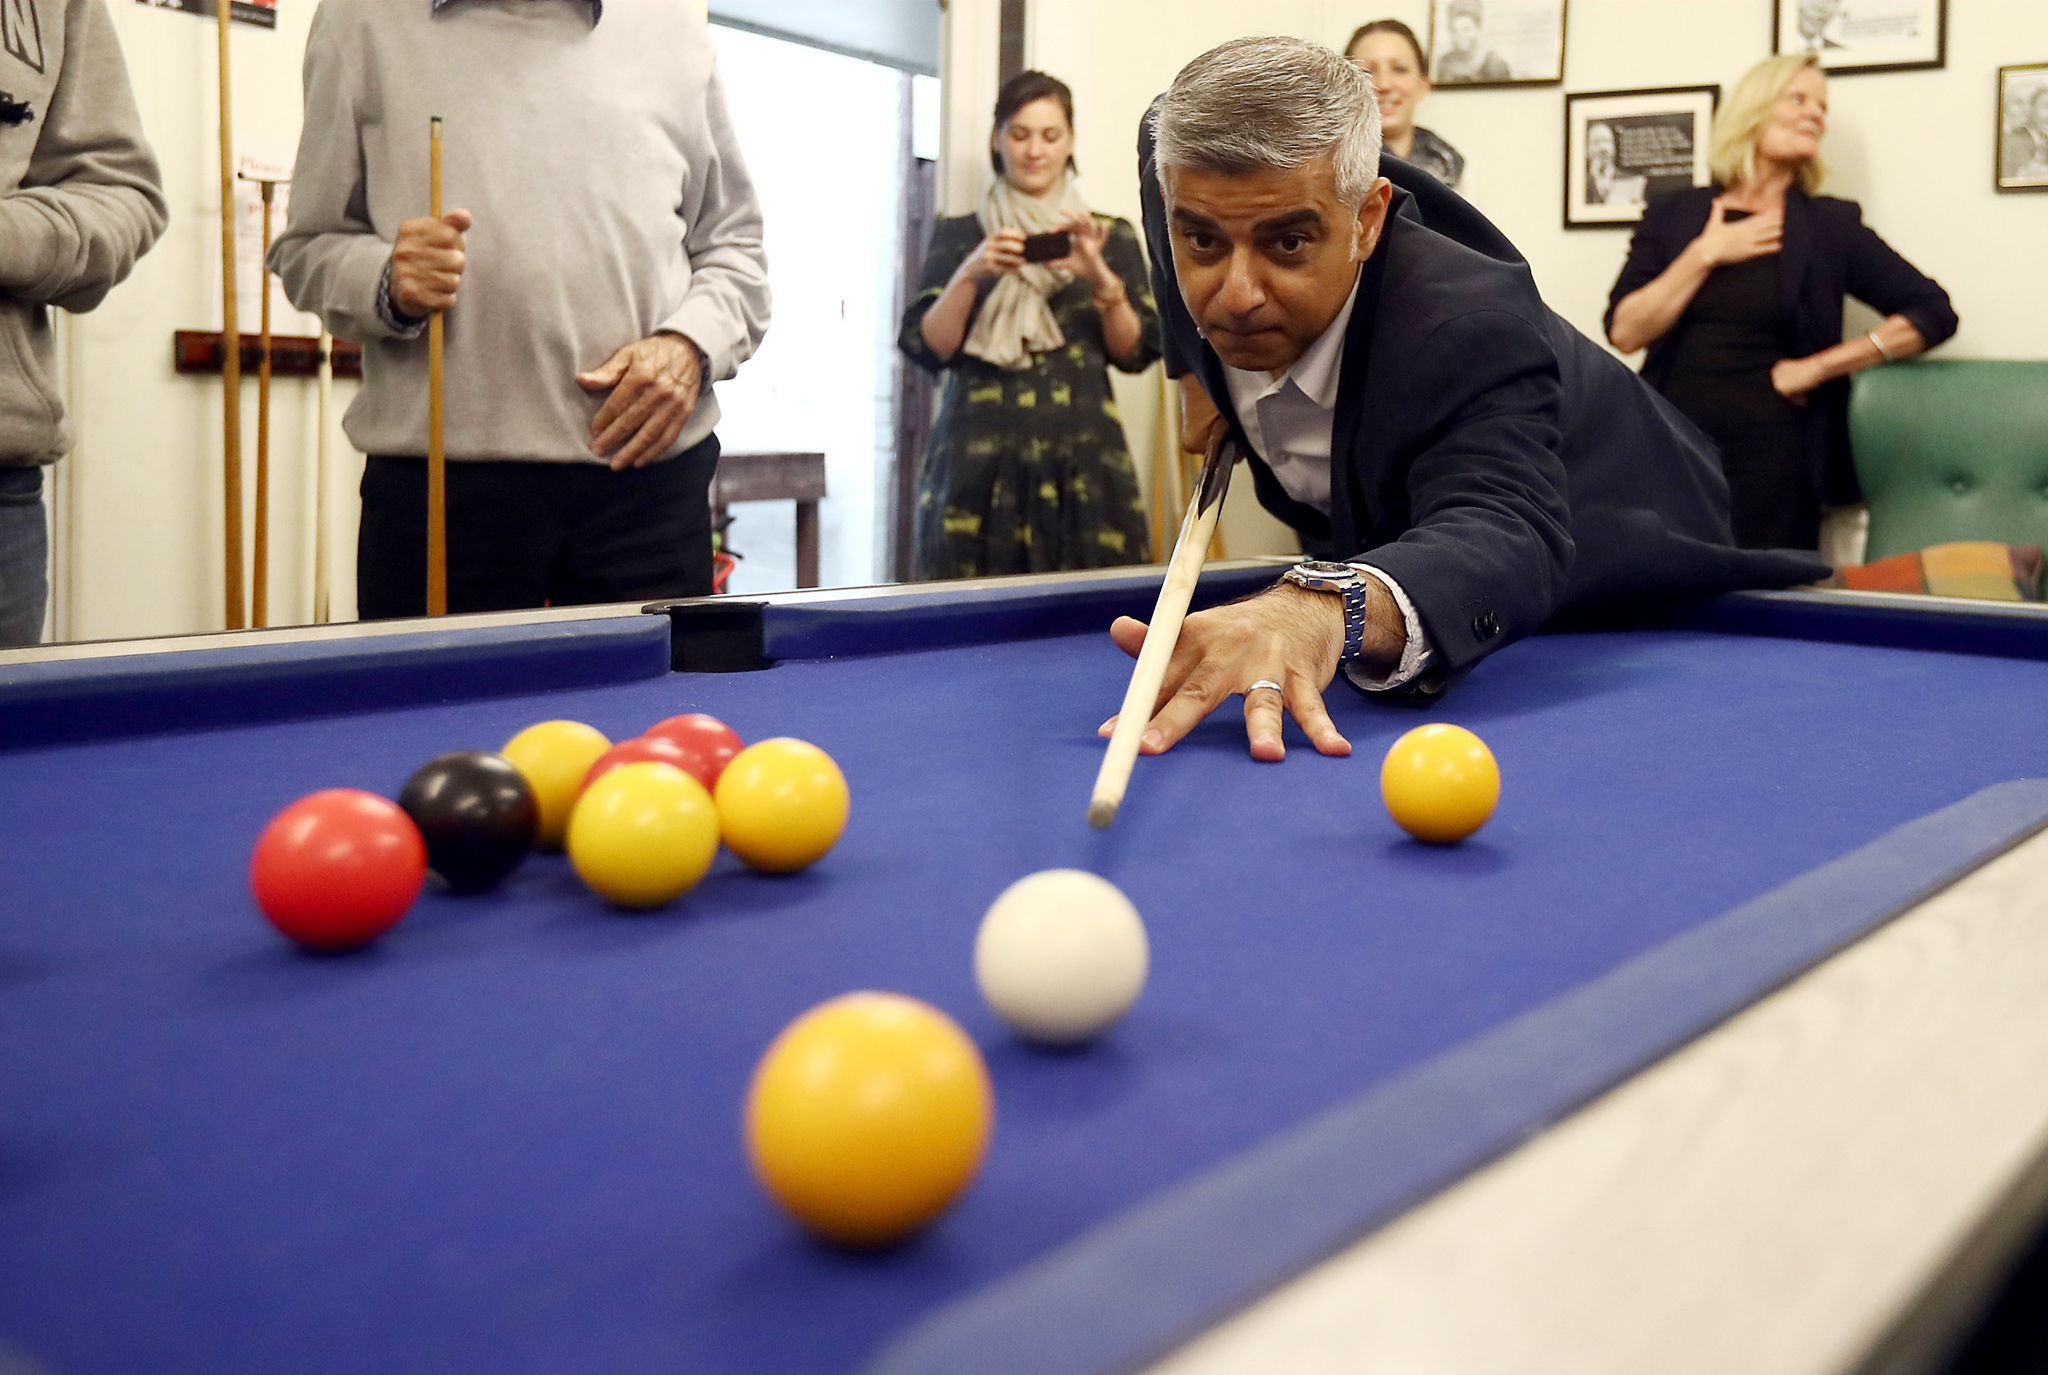 London mayor Sadiq Khan plays pool during a visit to Age UK Lewisham and Southwark pensioner day centre on June 1, 2016 in London, England. Mr Khan used the visit to launch Volunteers' Week and set out his plans to make social integration a core priority of his tenure.  (Photo by Carl Court/Getty Images) ***BEST